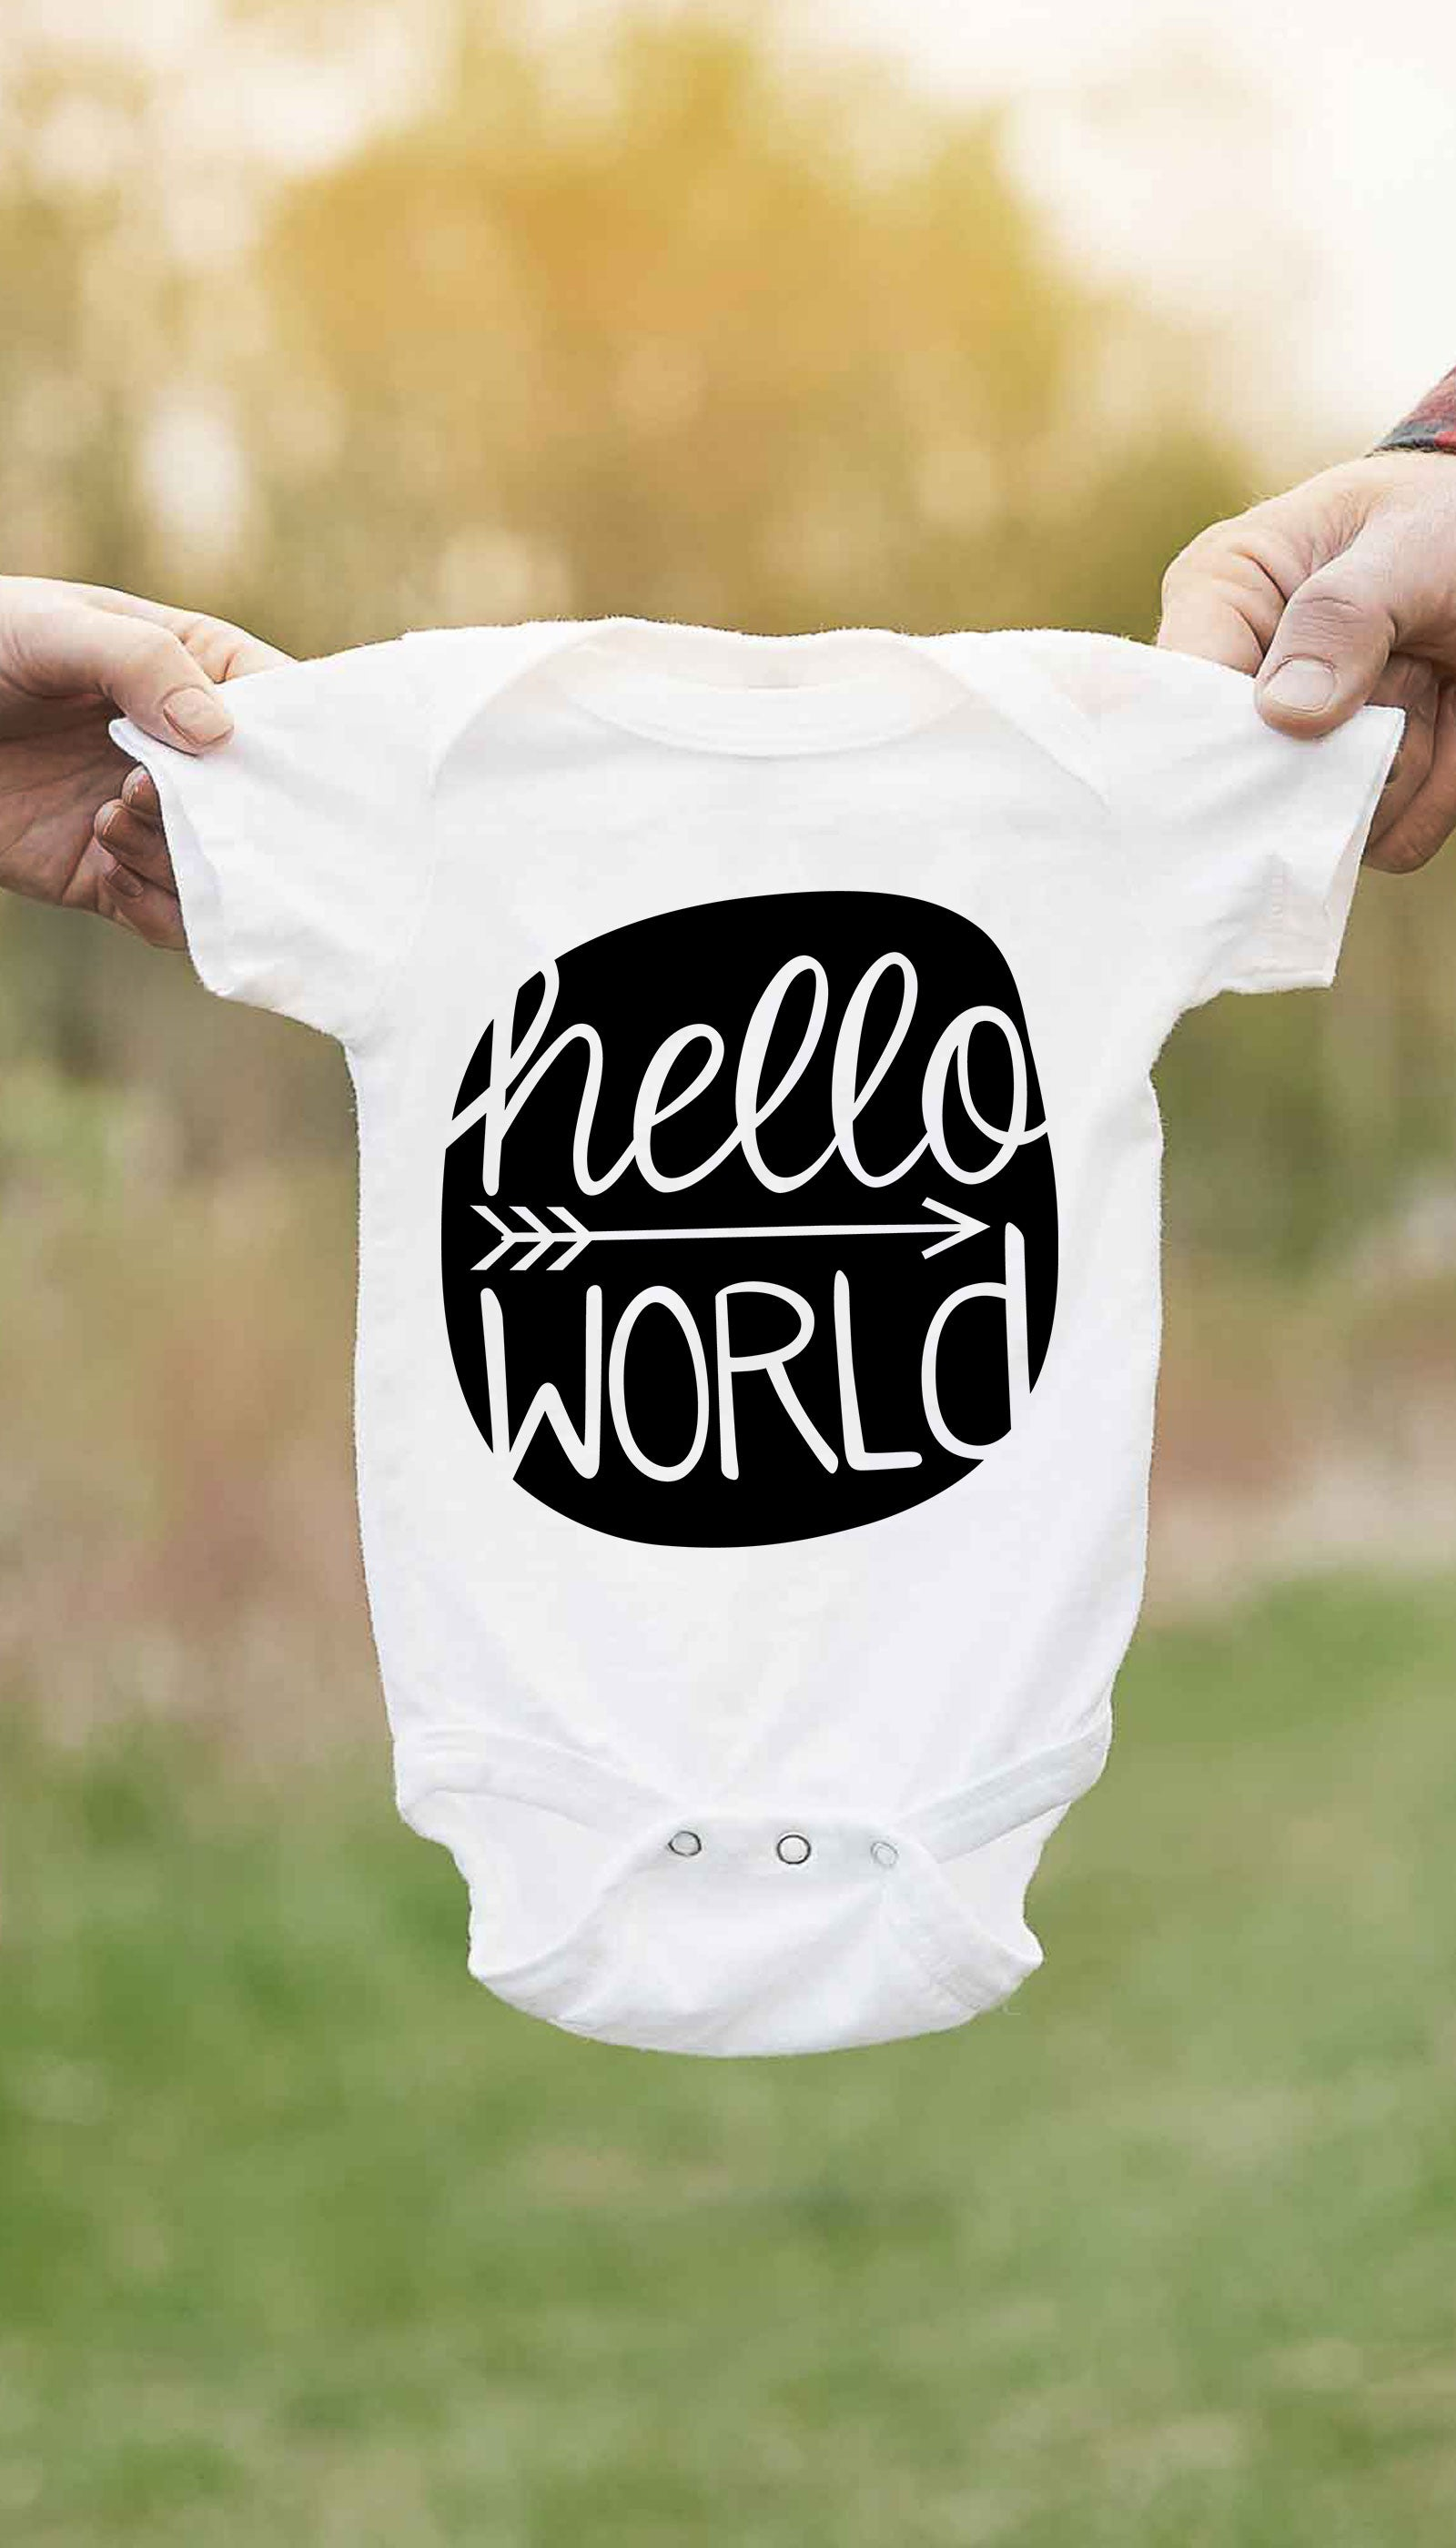 Hello World Cute & Funny Baby Infant Onesie